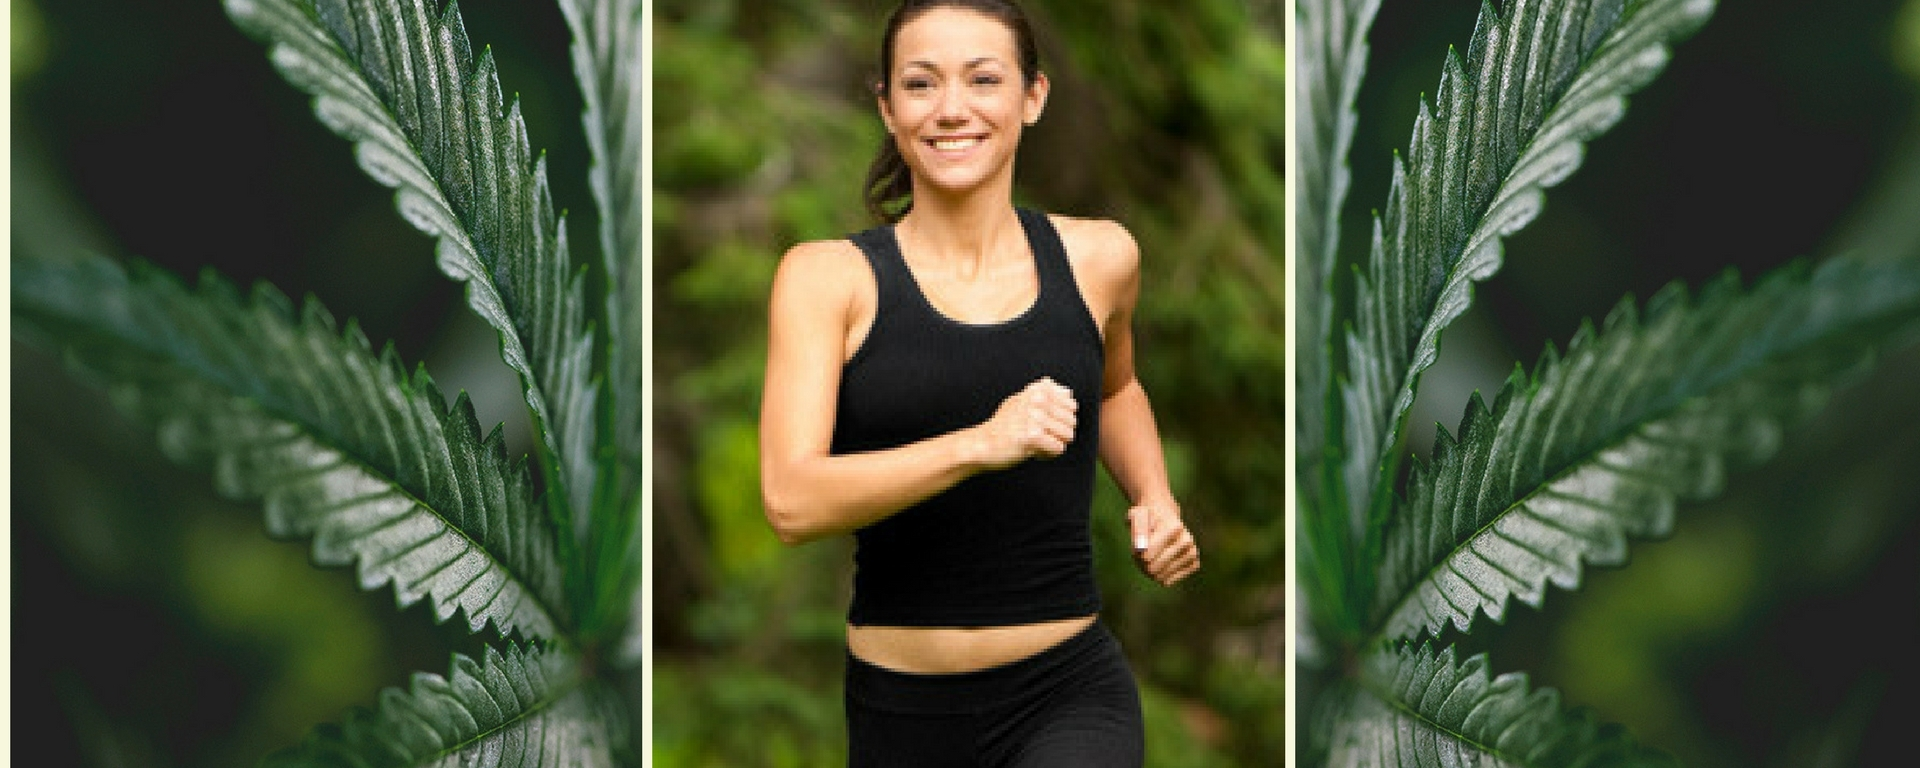 heyhellohigh-cannabis-and-cardio-smoke-workout